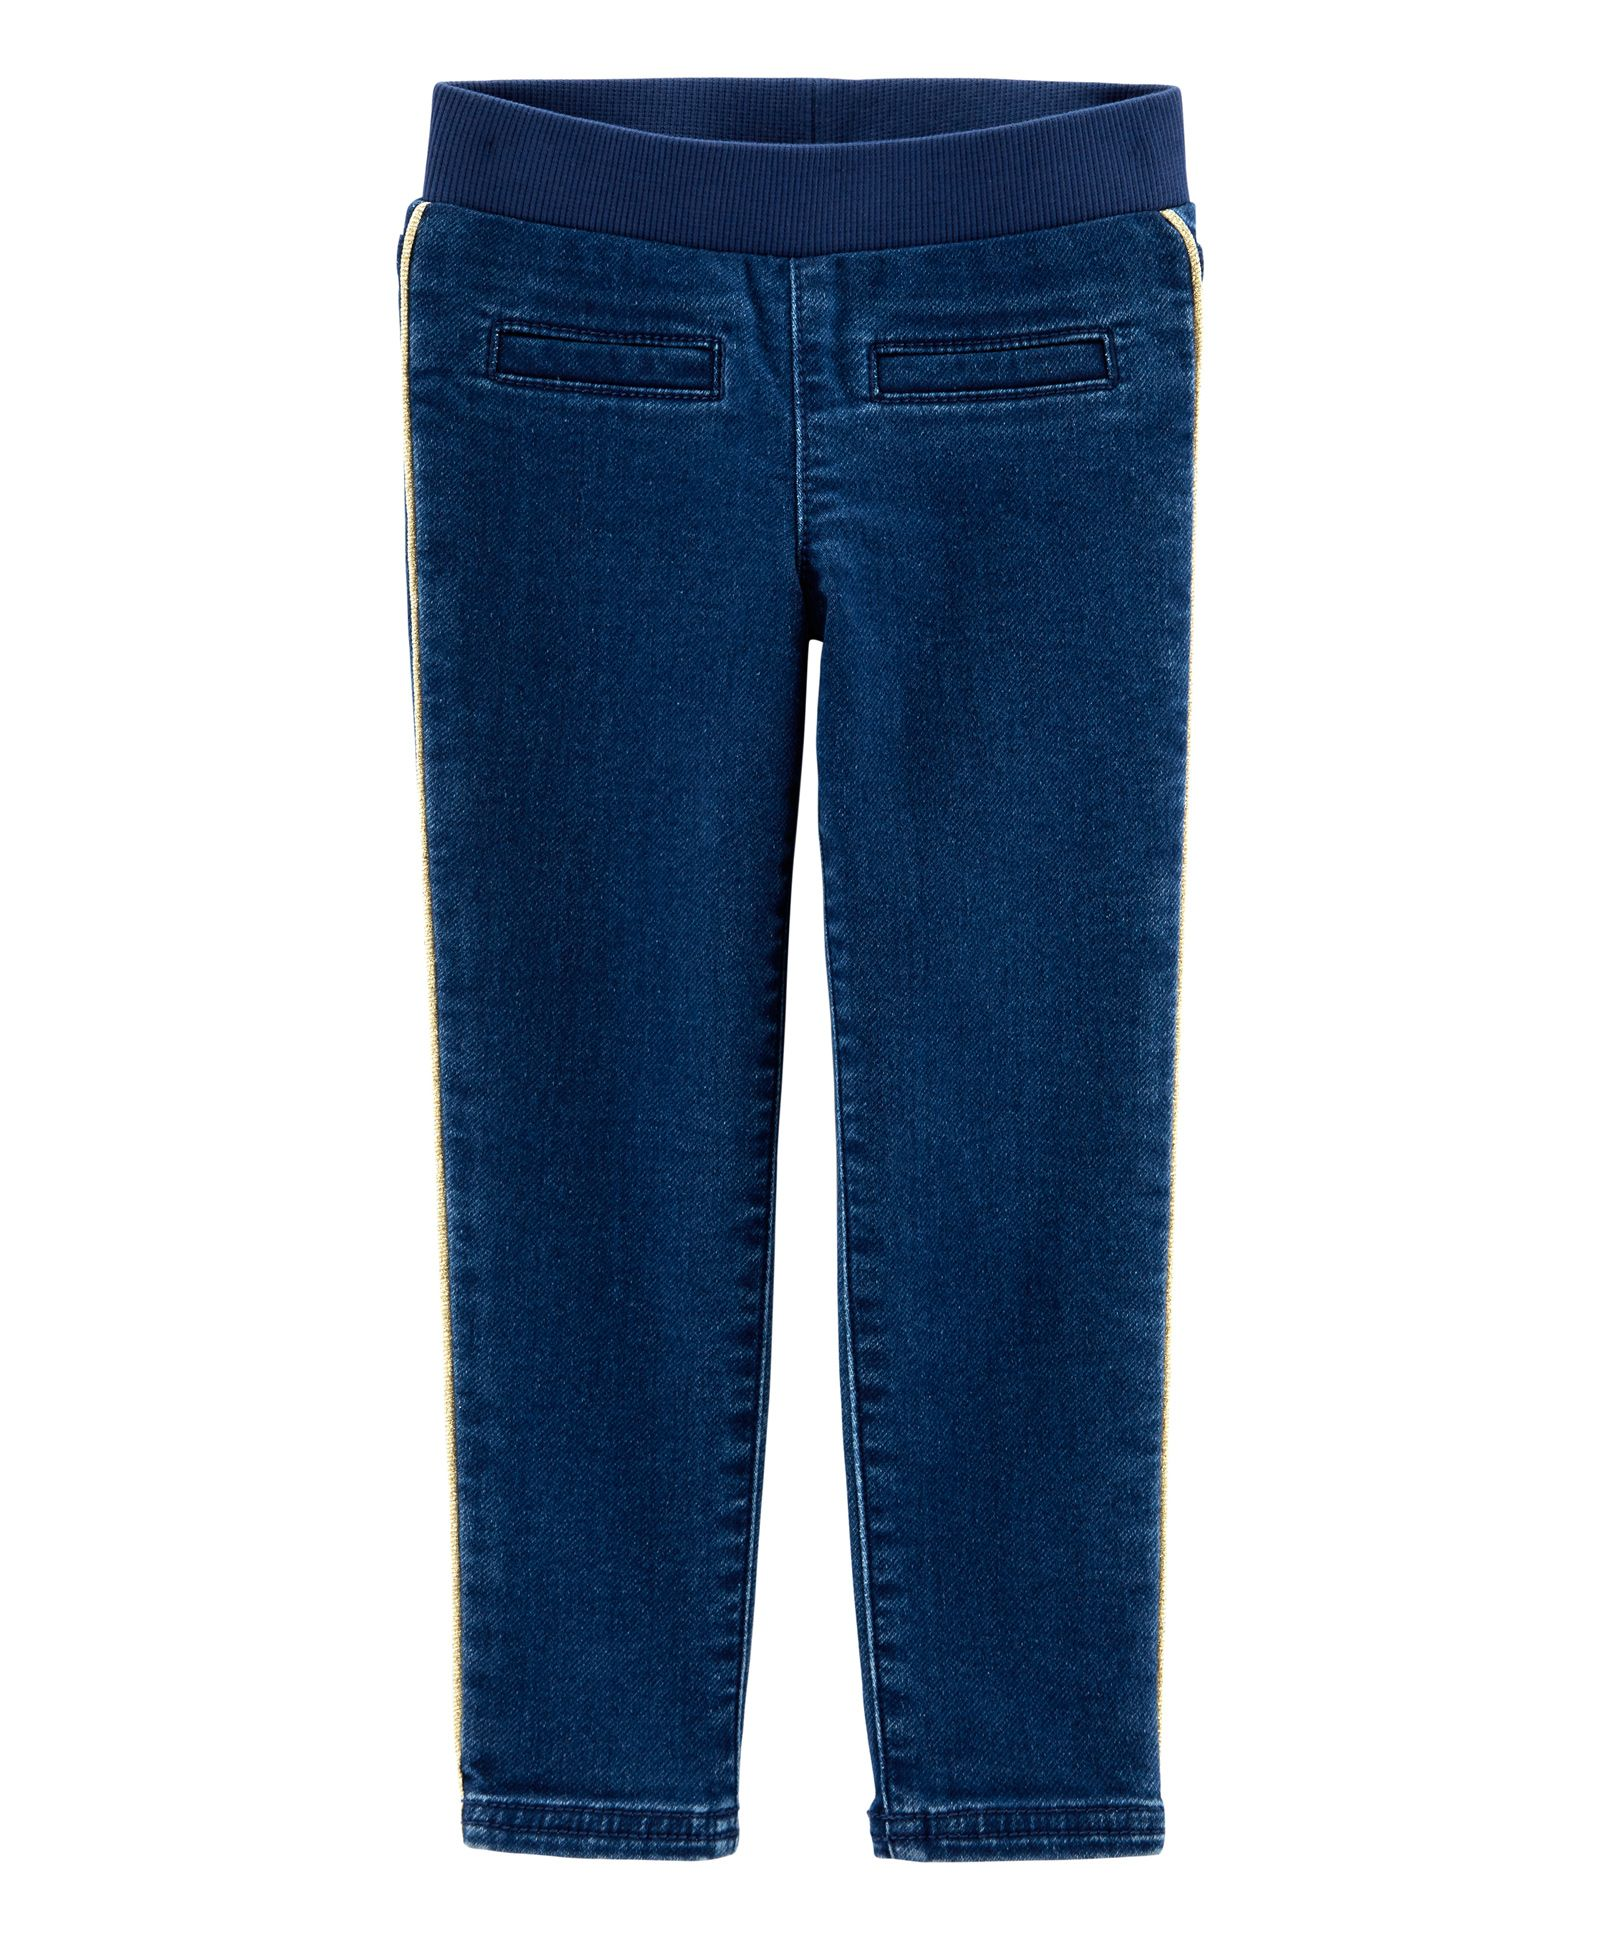 9125c0a6d Carter's Pull-On Skinny Stretch Knit Denim Jeggings - Dark Blue. 3 to 6  Months ...